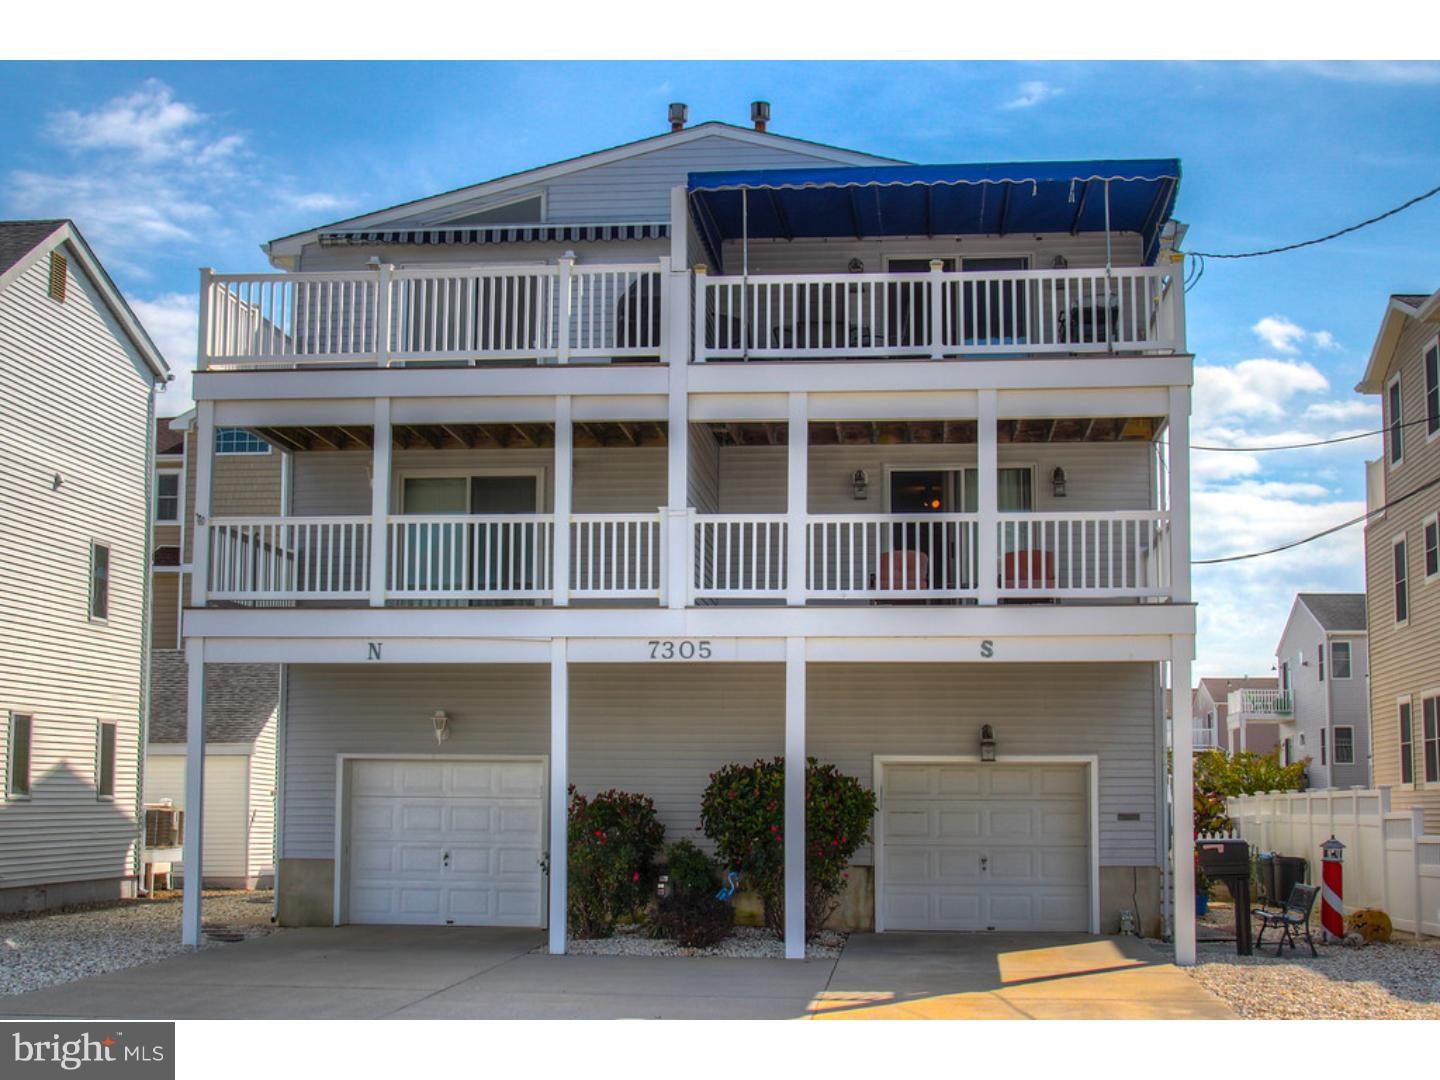 Single Family Home for Sale at 7305 CENTRAL AVE #SOUTH Sea Isle City, New Jersey 08243 United States